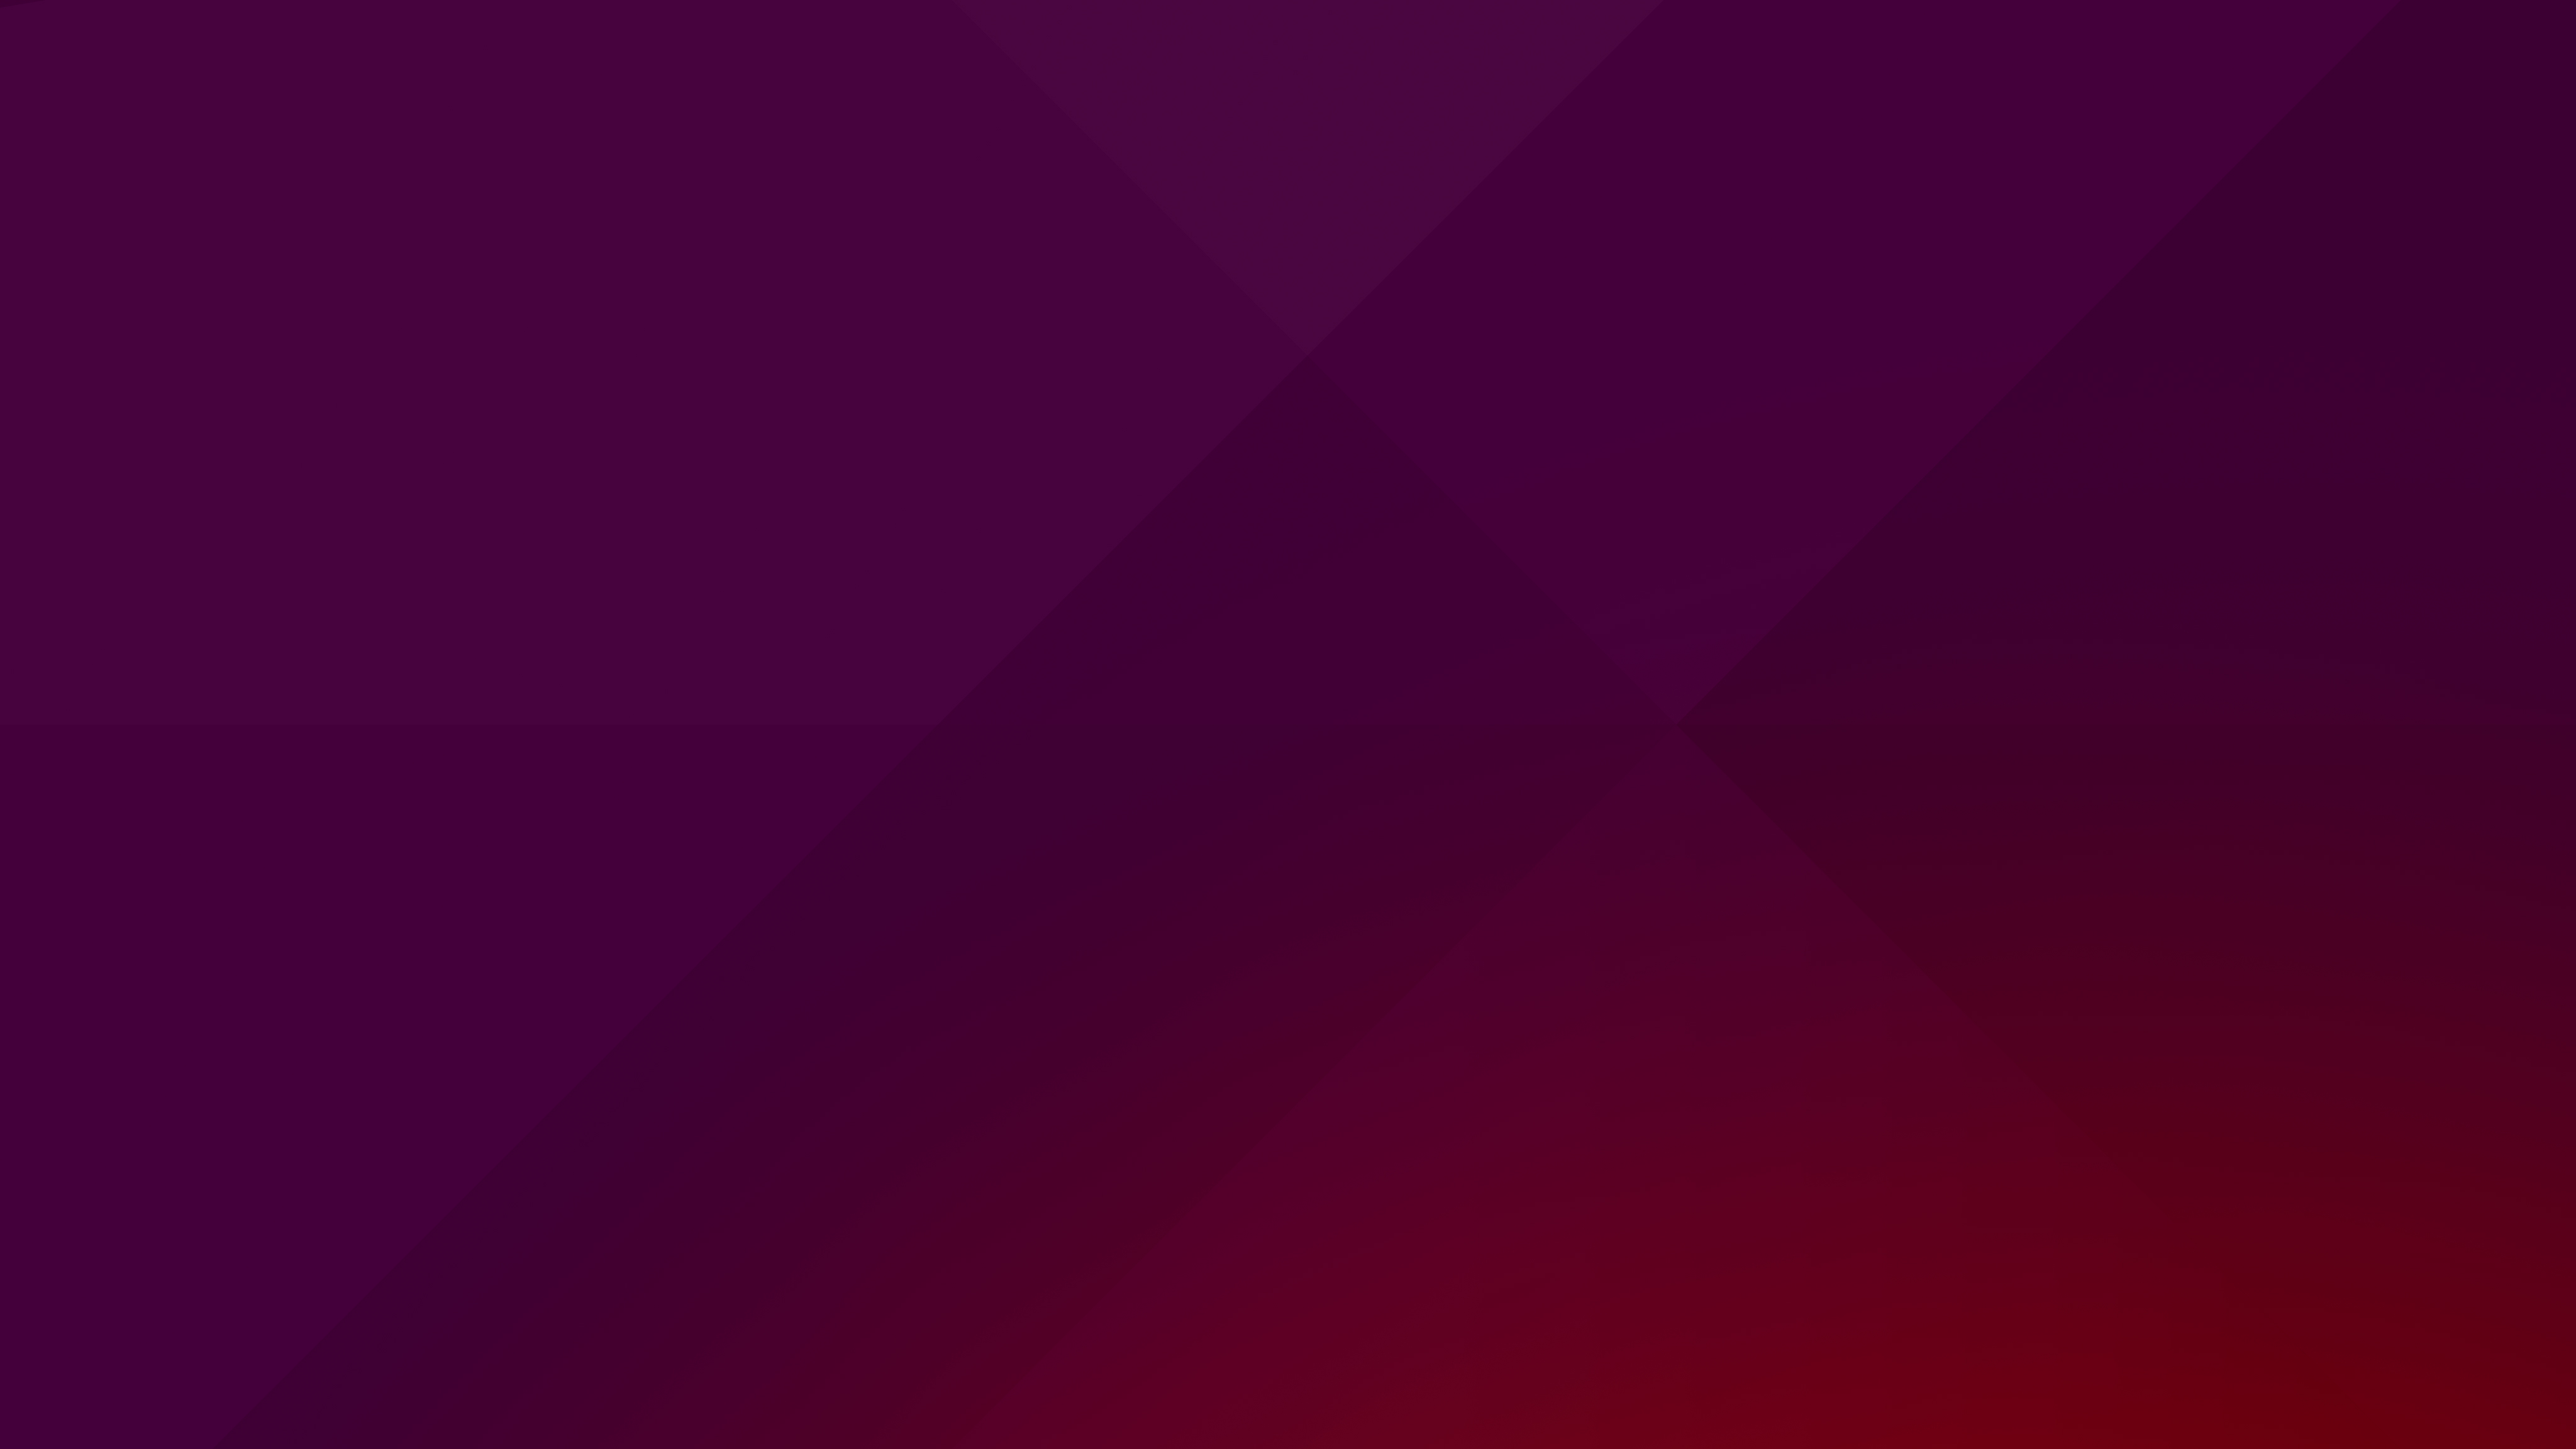 The New Ubuntu 1504 Default Wallpaper Is Here 4096x2304